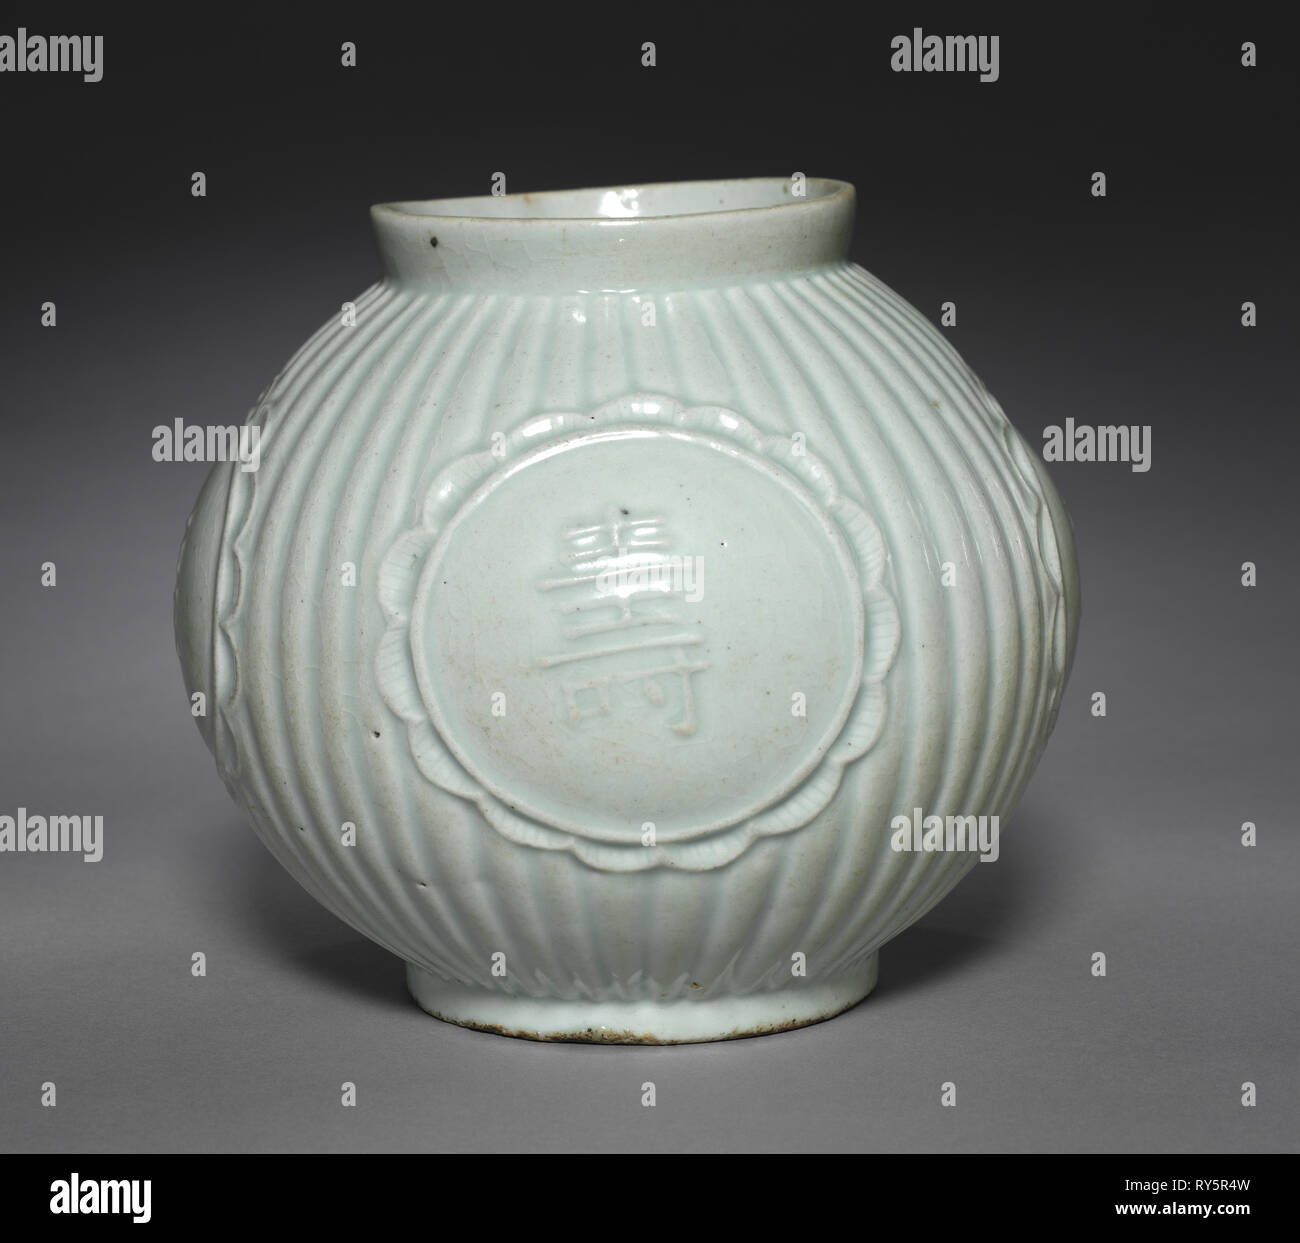 Jar with Four Auspicious Characters in Relief, 1800s. Korea, Joseon dynasty (1392-1910). Glazed porcelain - Stock Image